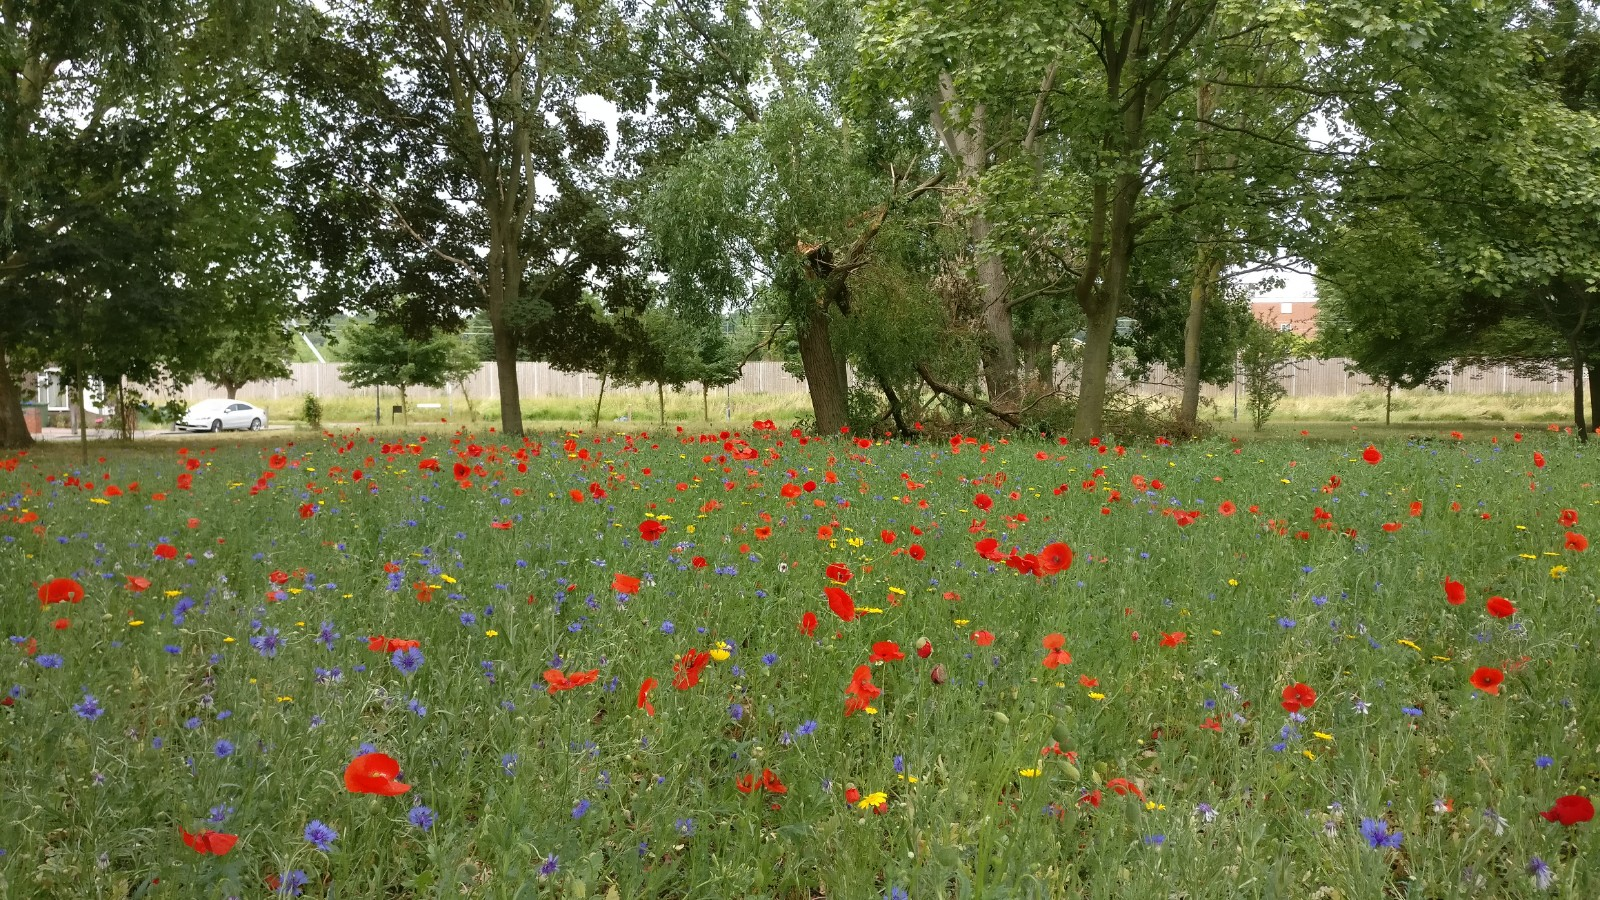 Wildflowers in the Abbey Wood estate planted in early 2020